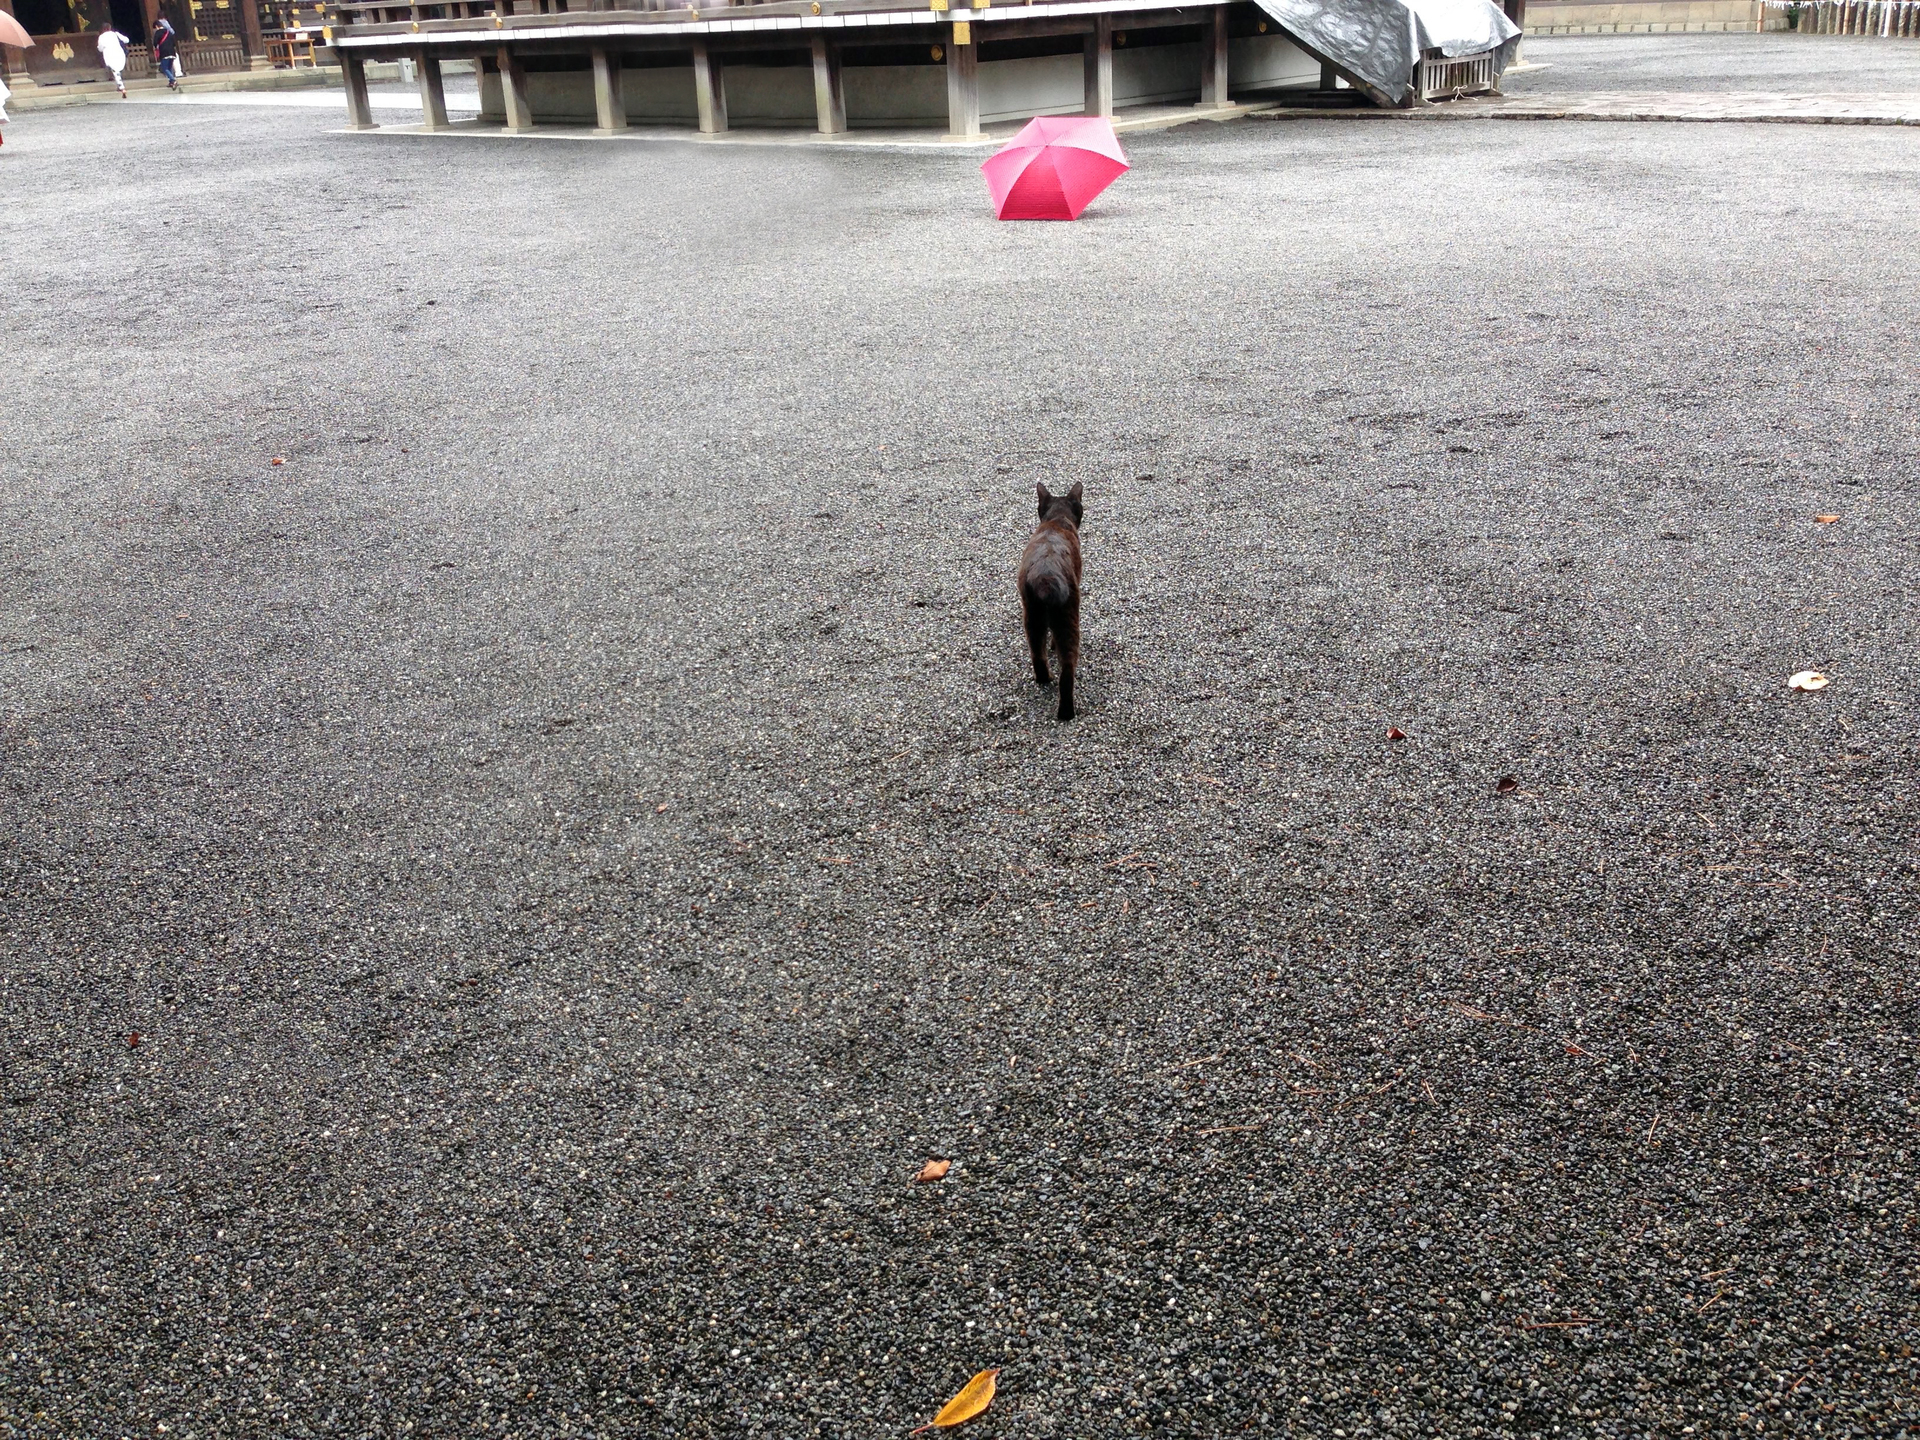 Cat walks towards the umbrella